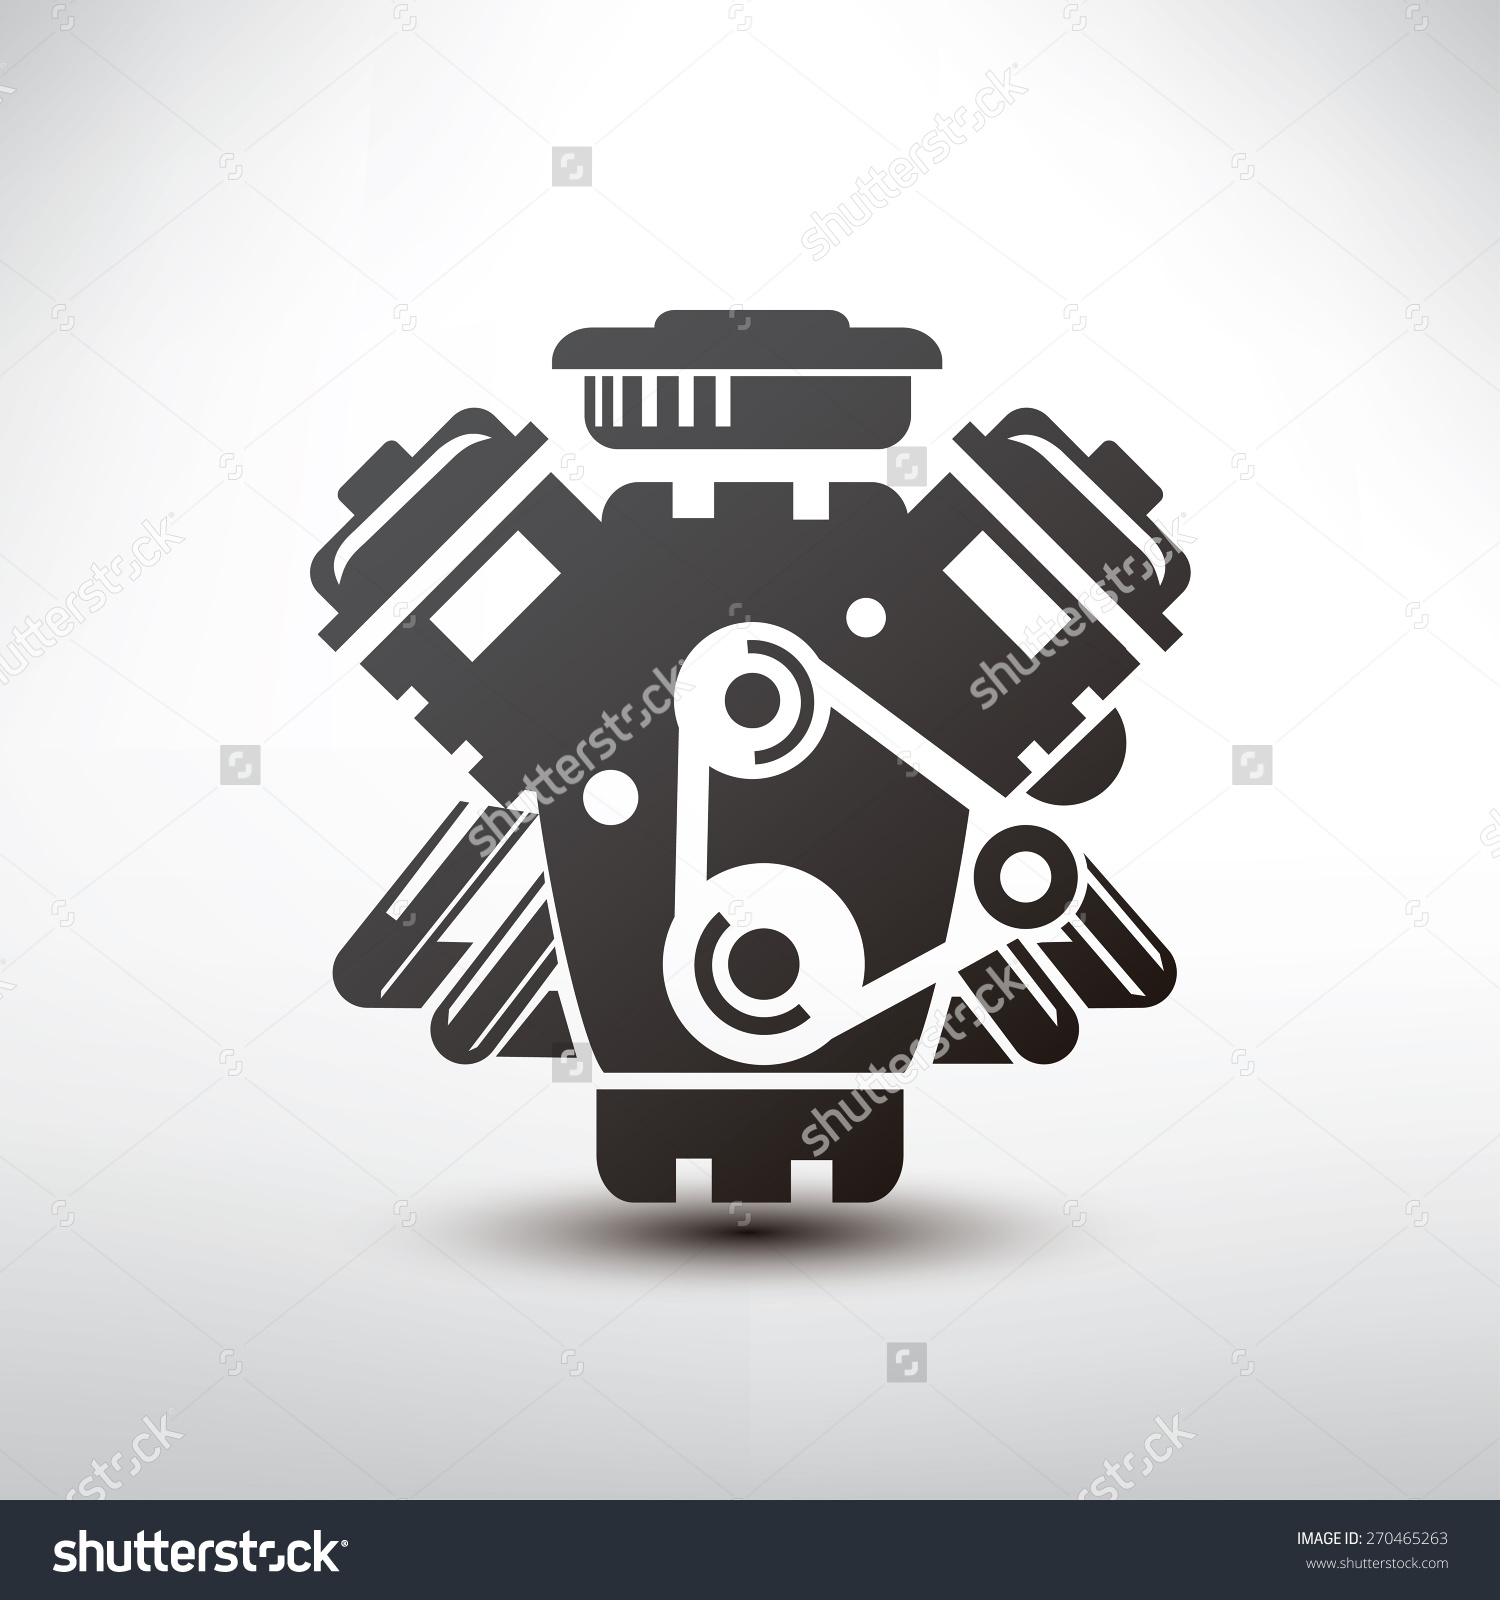 Block clipart motor silhouette. Clipartfest simple car engine